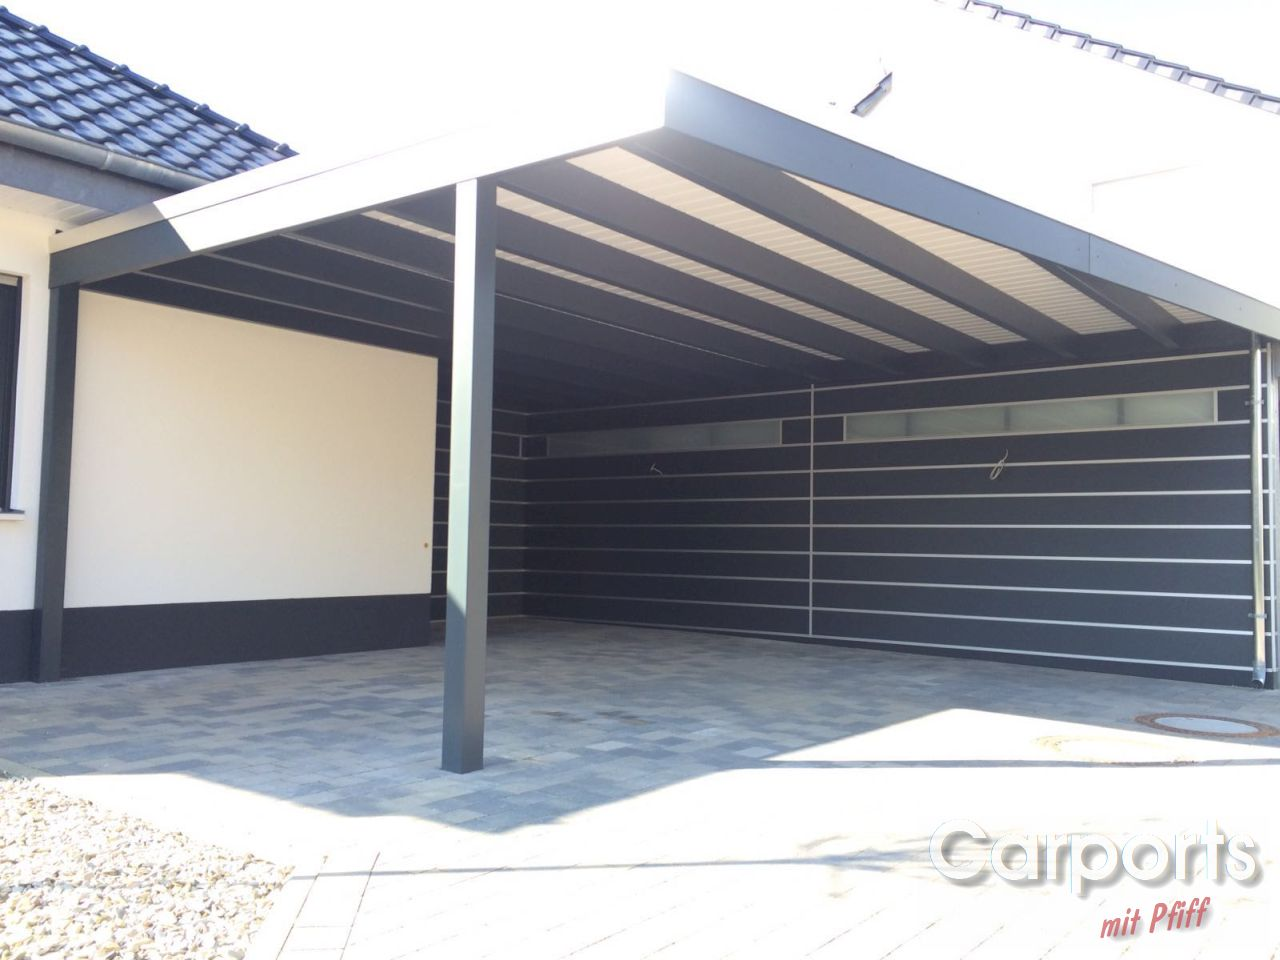 carport bauhaus hpl mit abstellraum und seitenwand. Black Bedroom Furniture Sets. Home Design Ideas